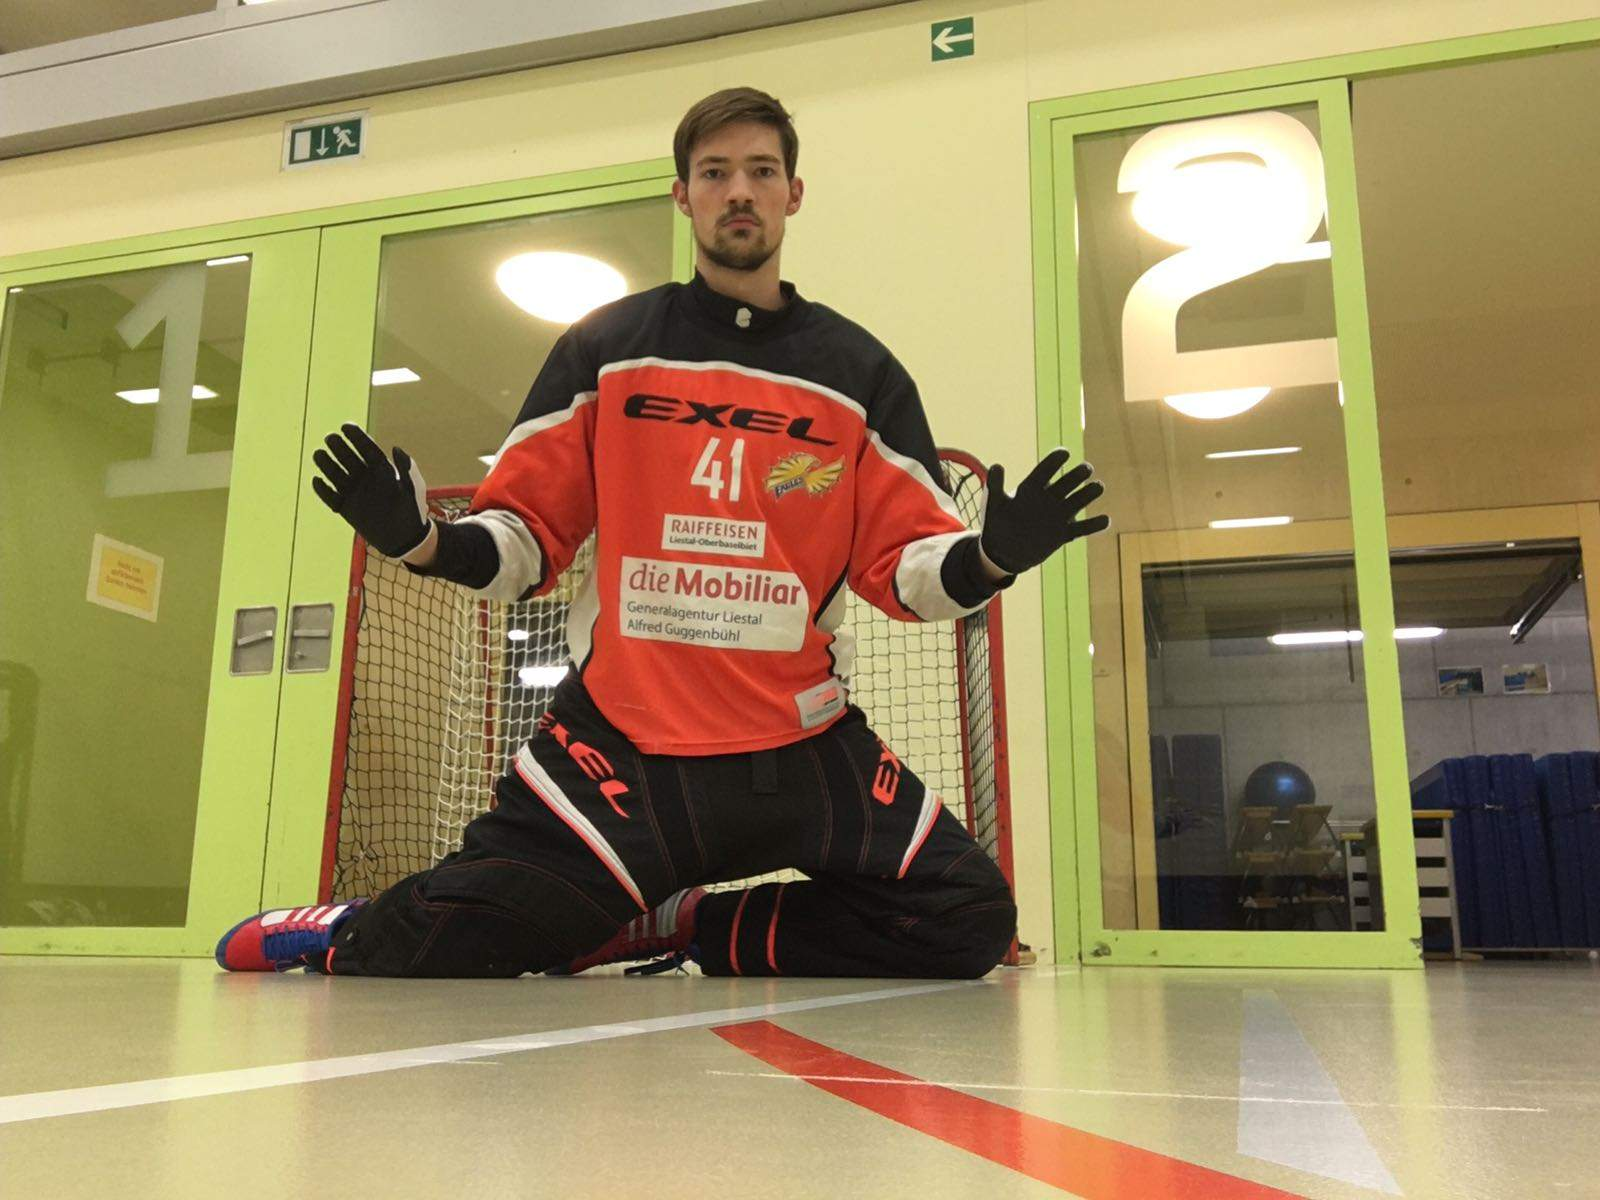 Floorball Goalie Closed Legs Front